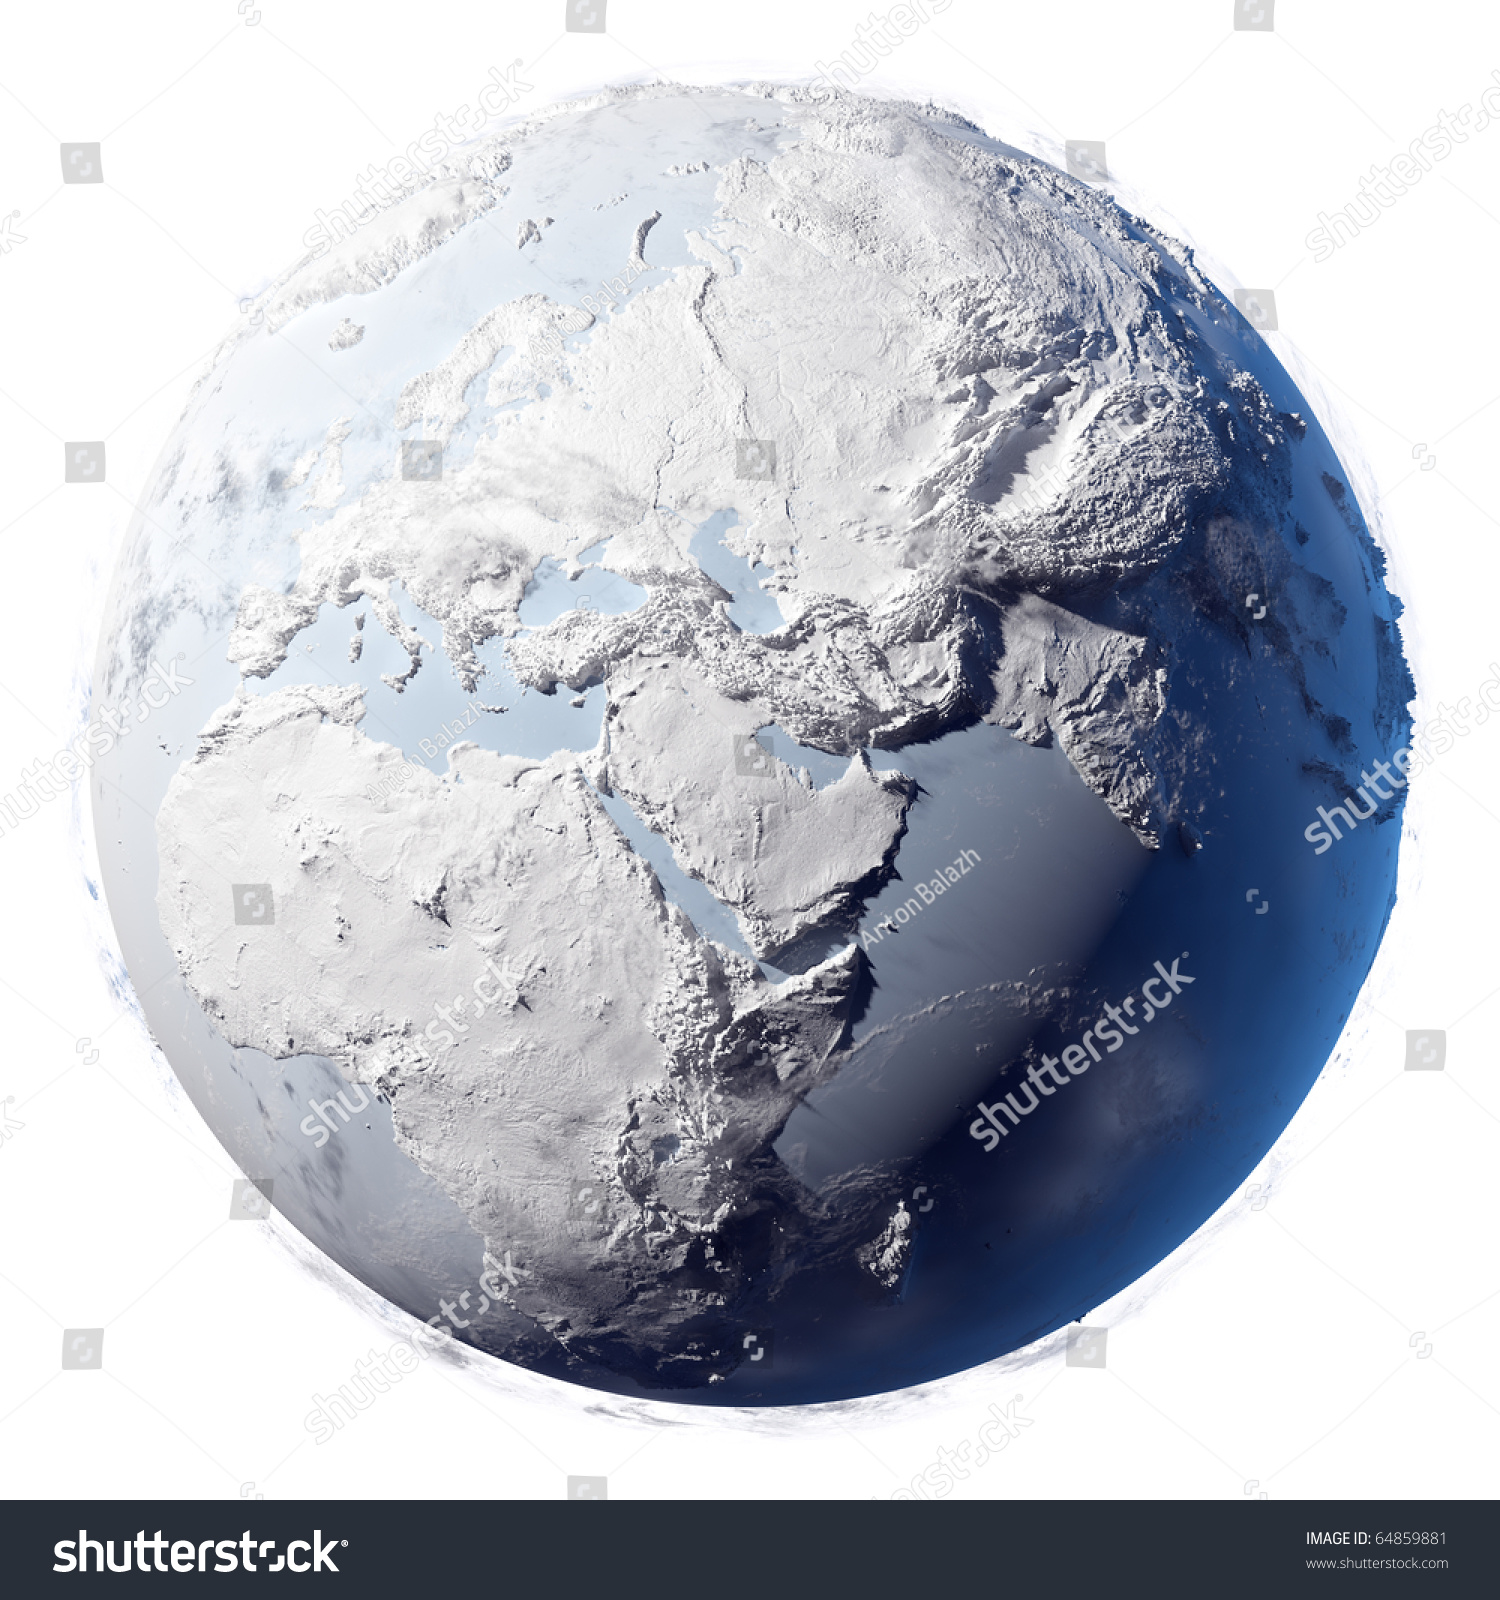 how to create half of sphere in world edit